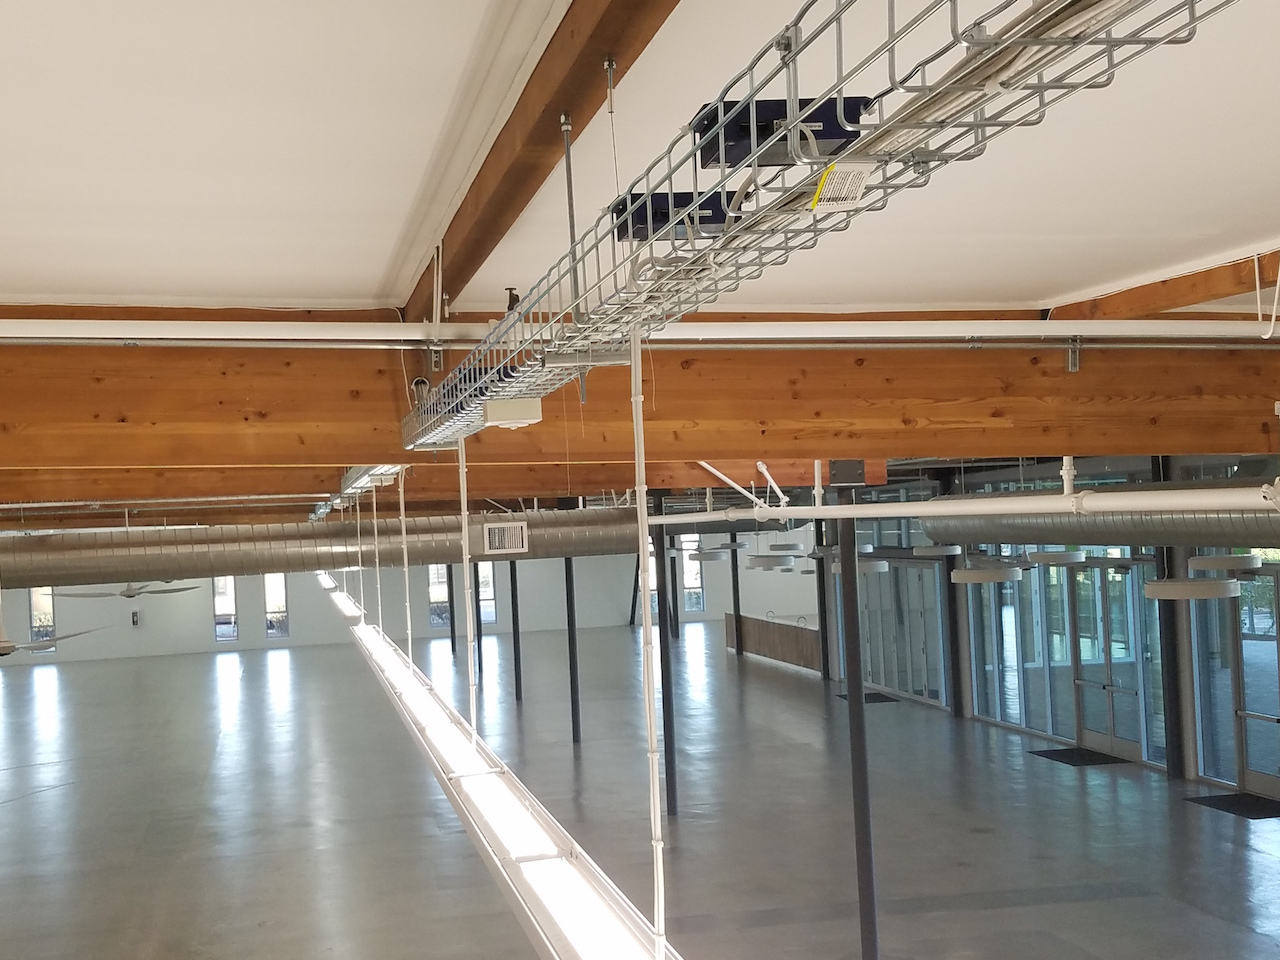 A NuLEDs installation powering LED lights and ceiling fans using the NuLEDs Spicebox solution.